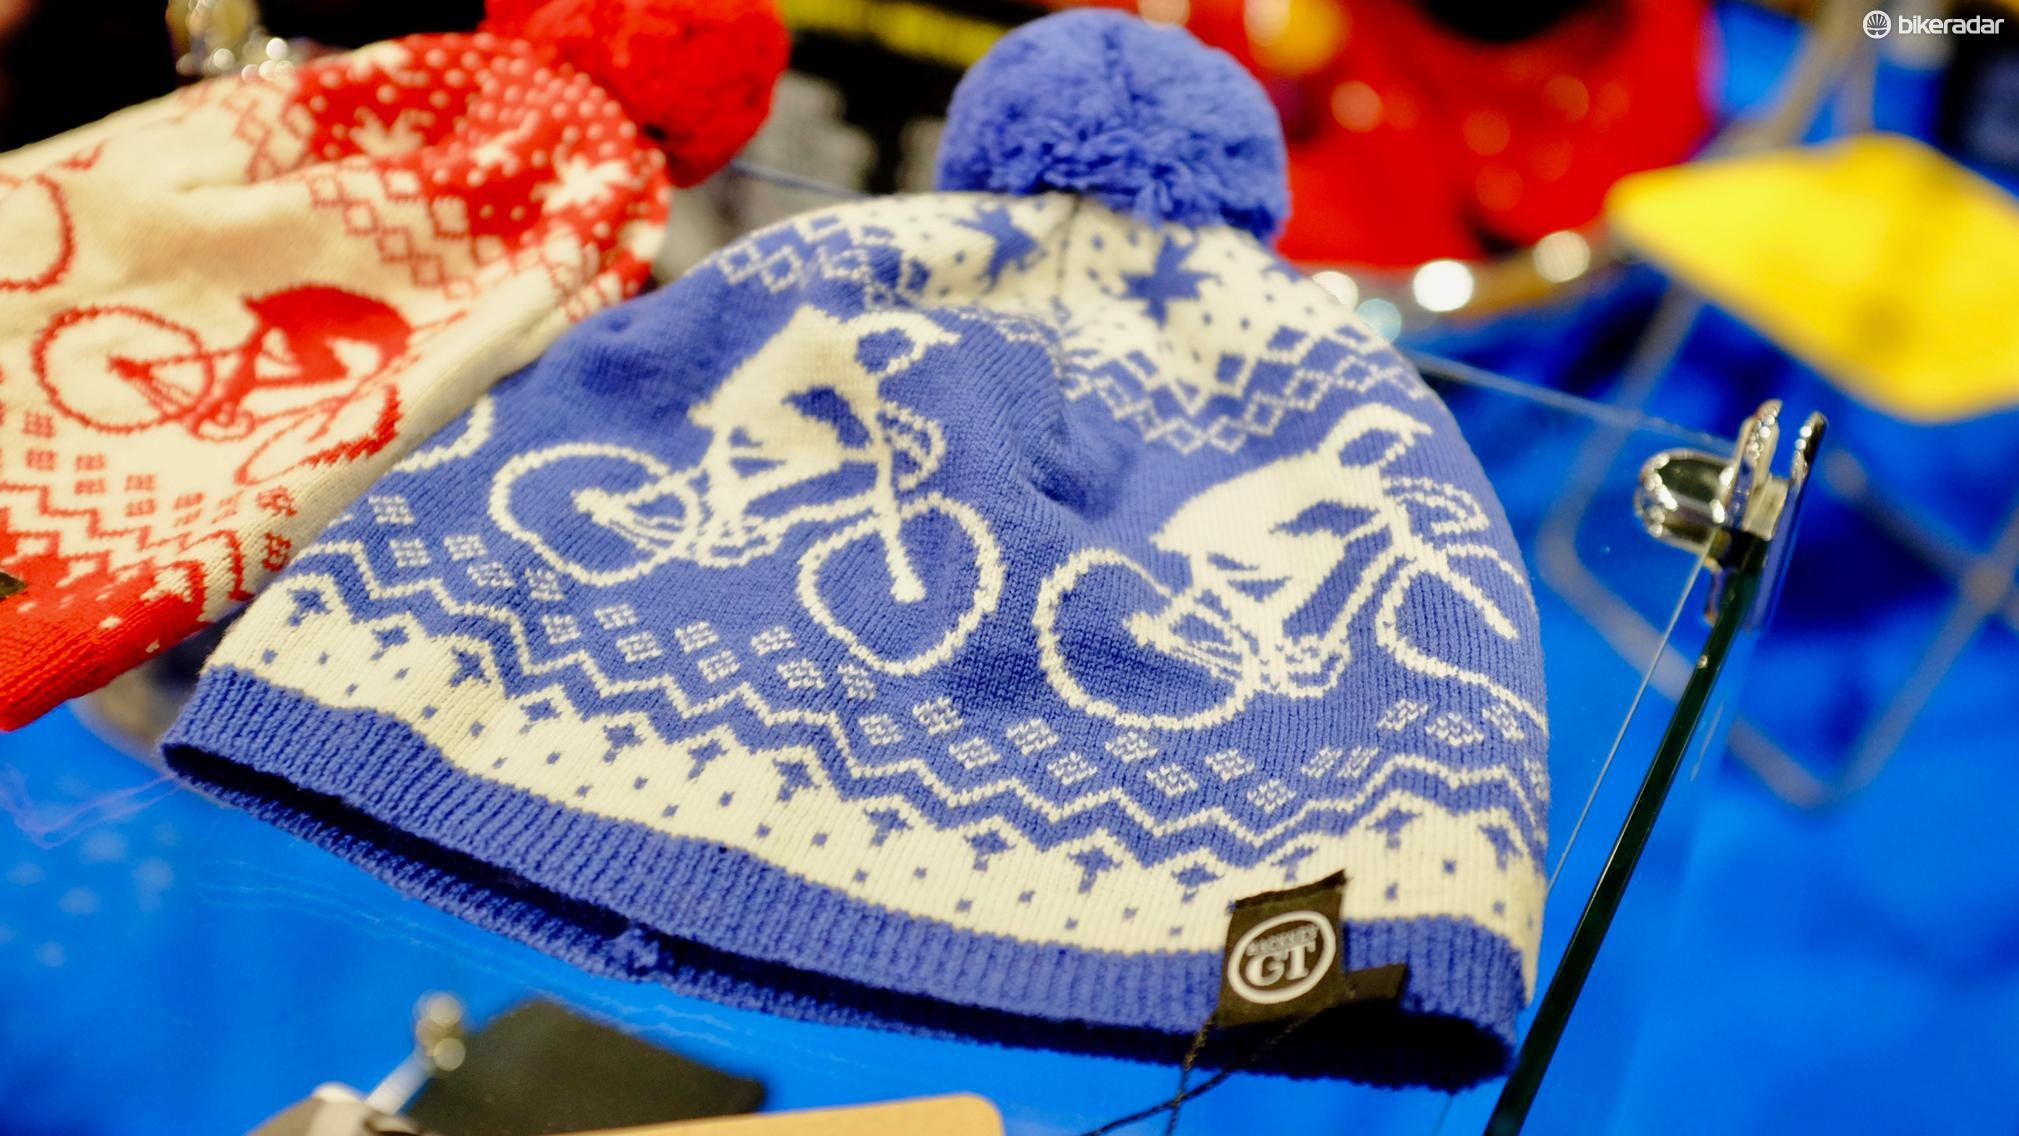 Hackney GT hat keeps you warm and shows your bike love